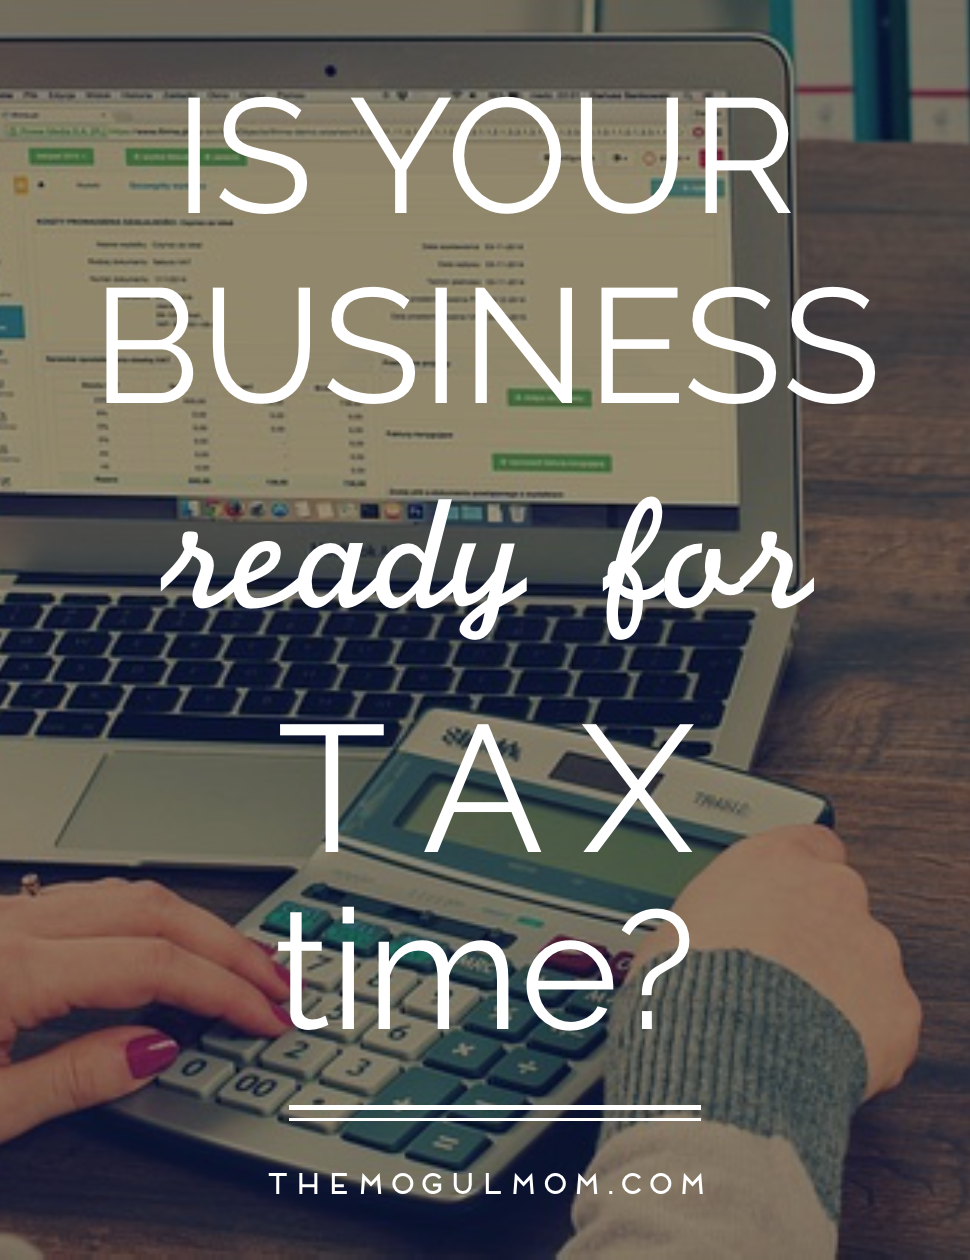 Are You Ready for Tax Time? Here's How to Be!